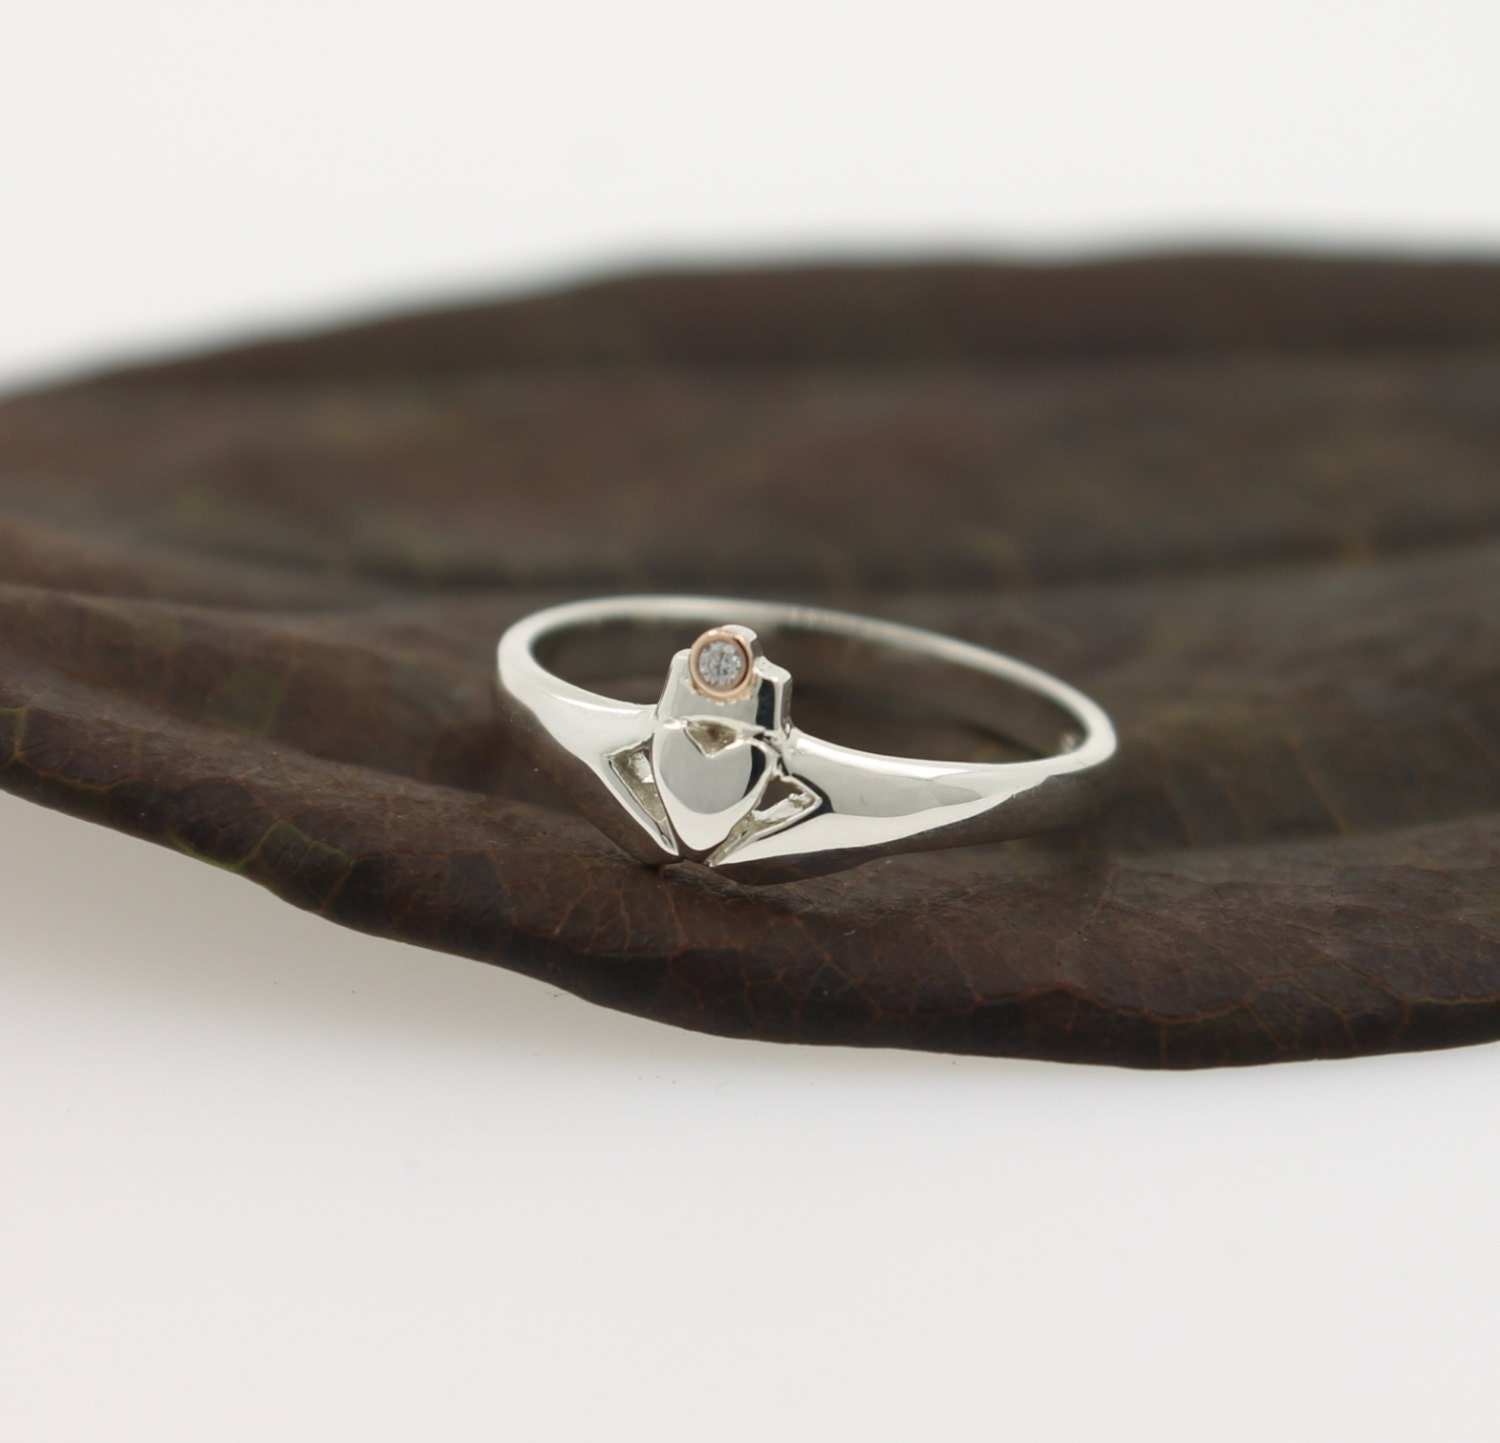 claddagh ring with real diamond set in a rose gold bezel. Black Bedroom Furniture Sets. Home Design Ideas